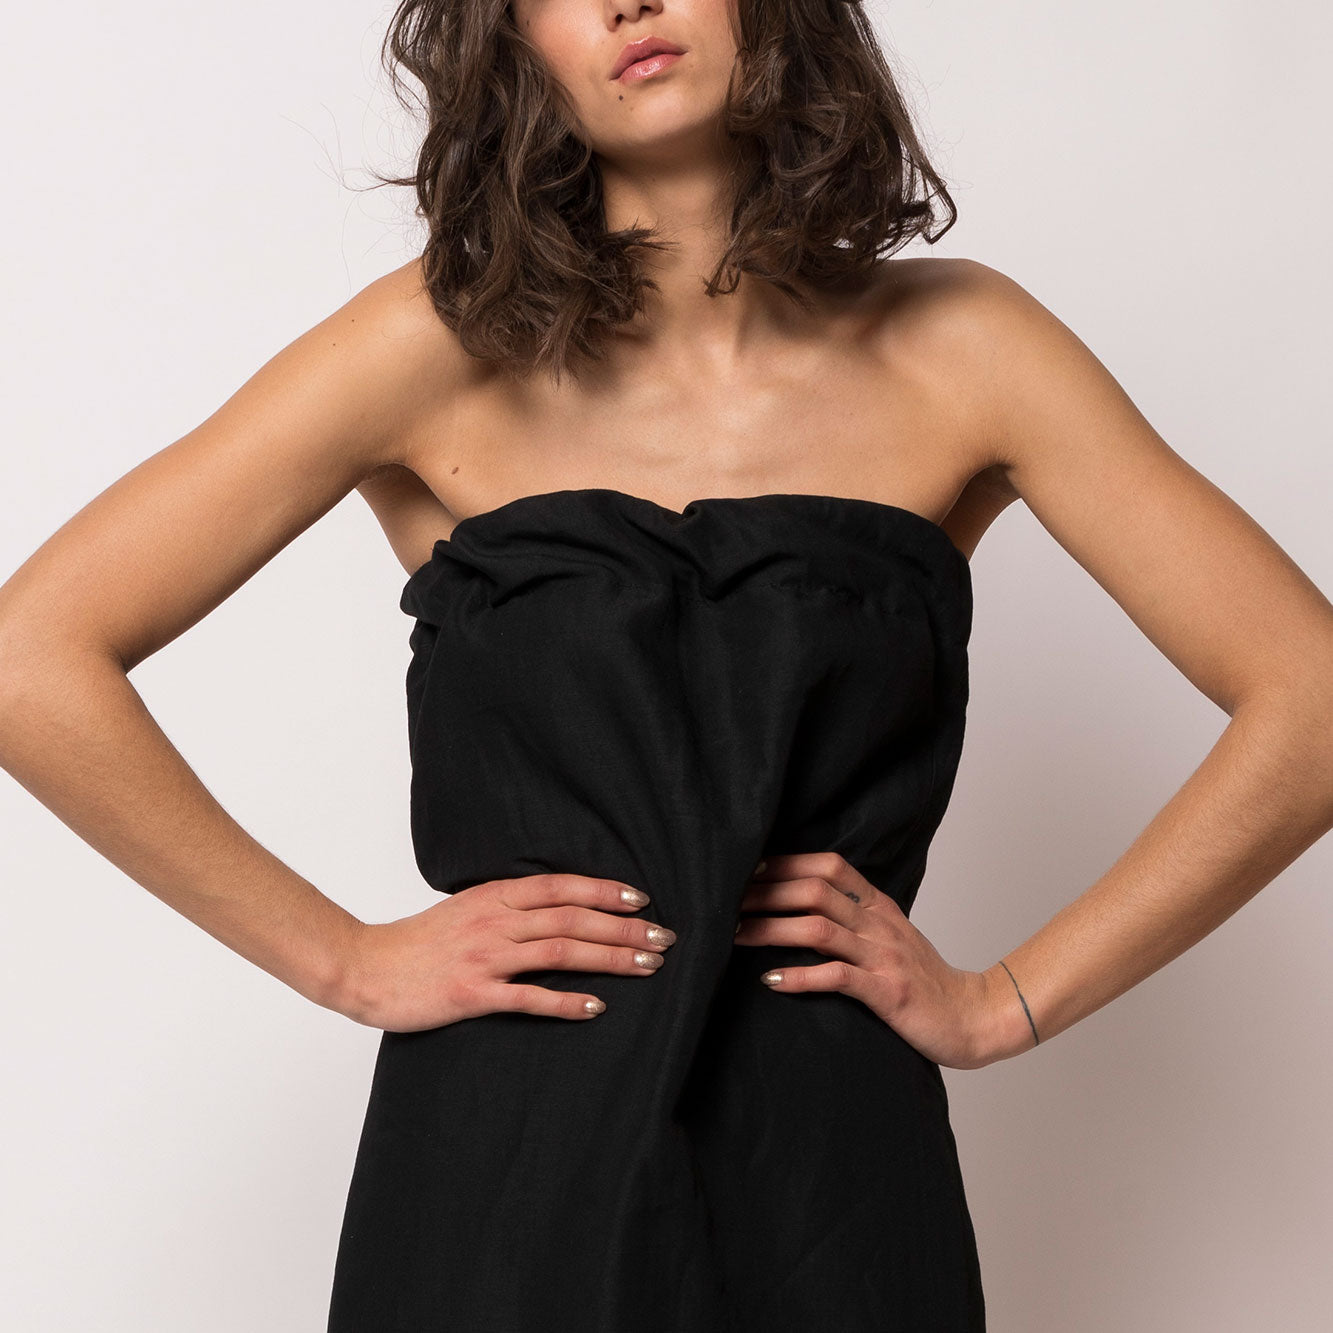 Strapless dress - Tindi